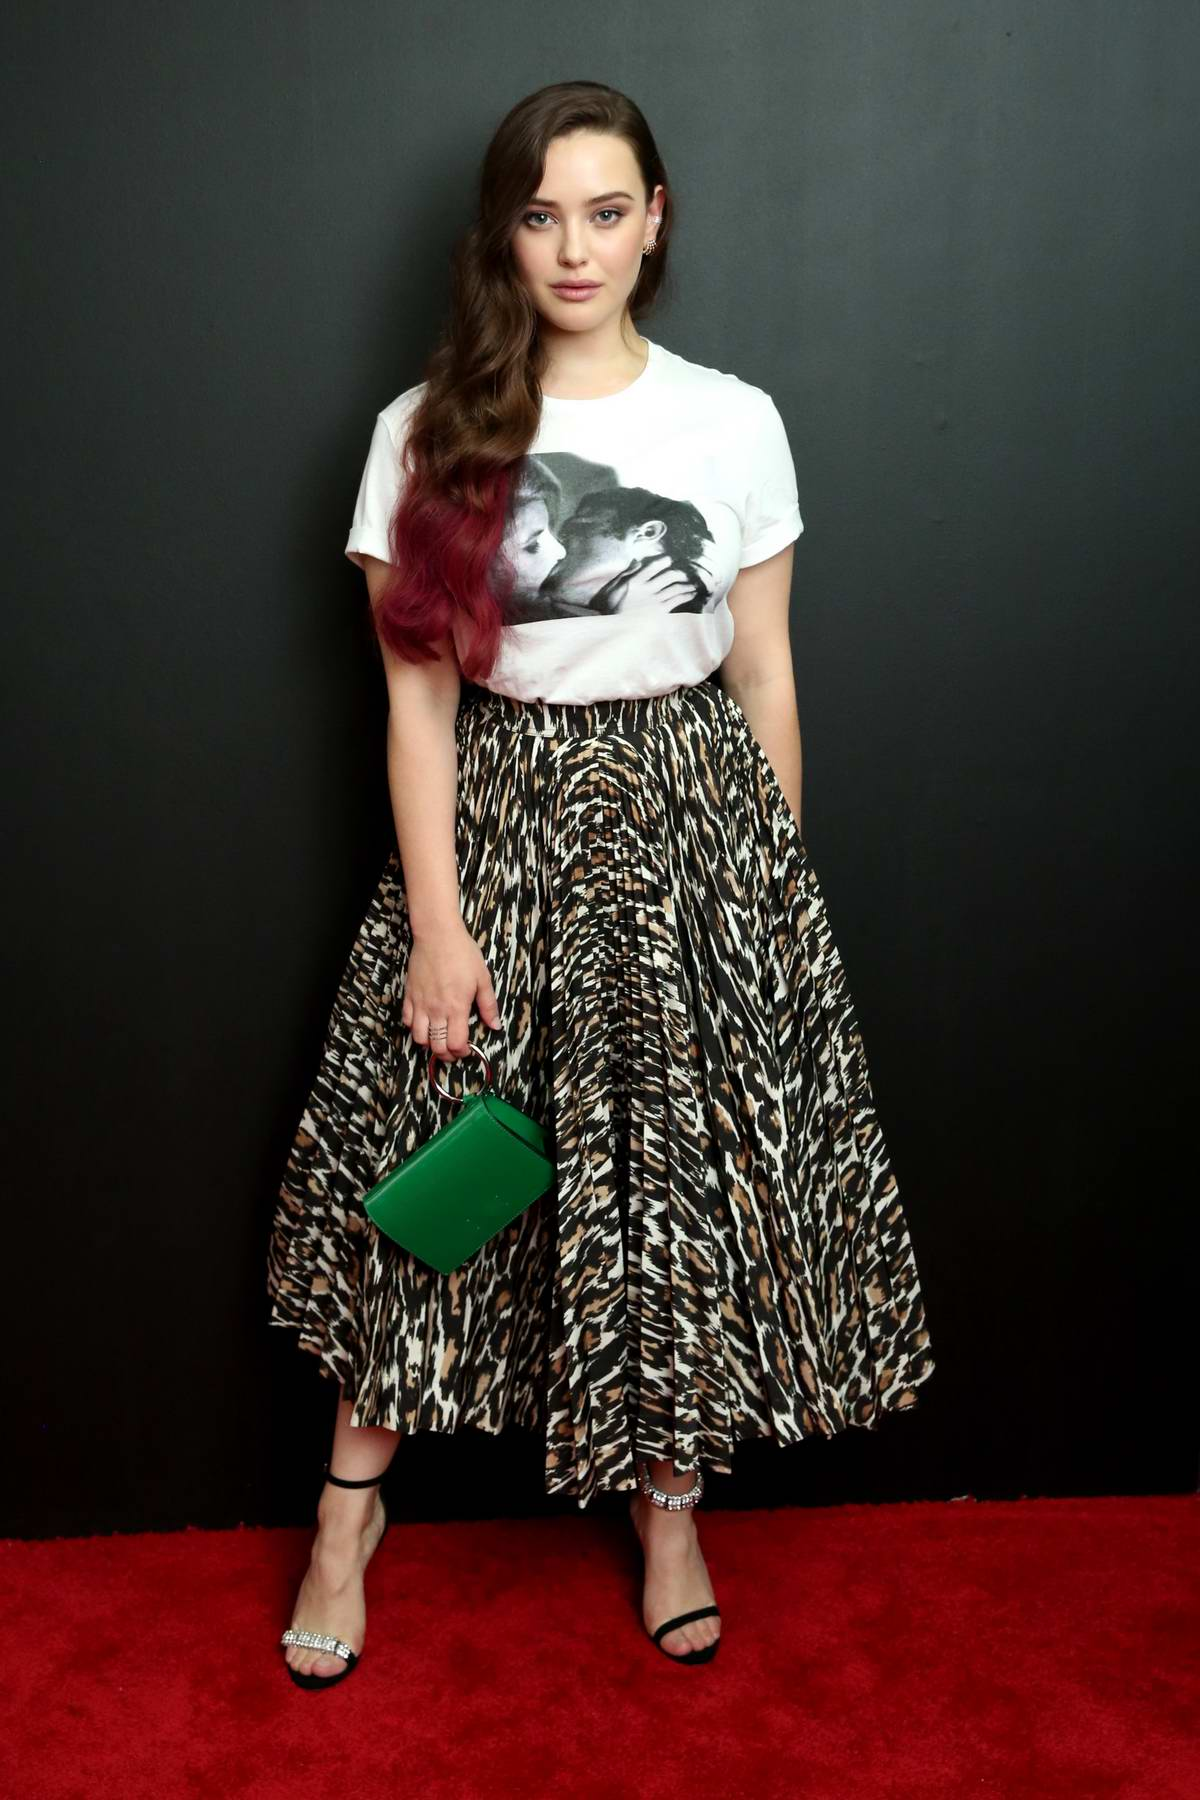 Katherine Langford attends Calvin Klein show during New York Fashion Week in New York City